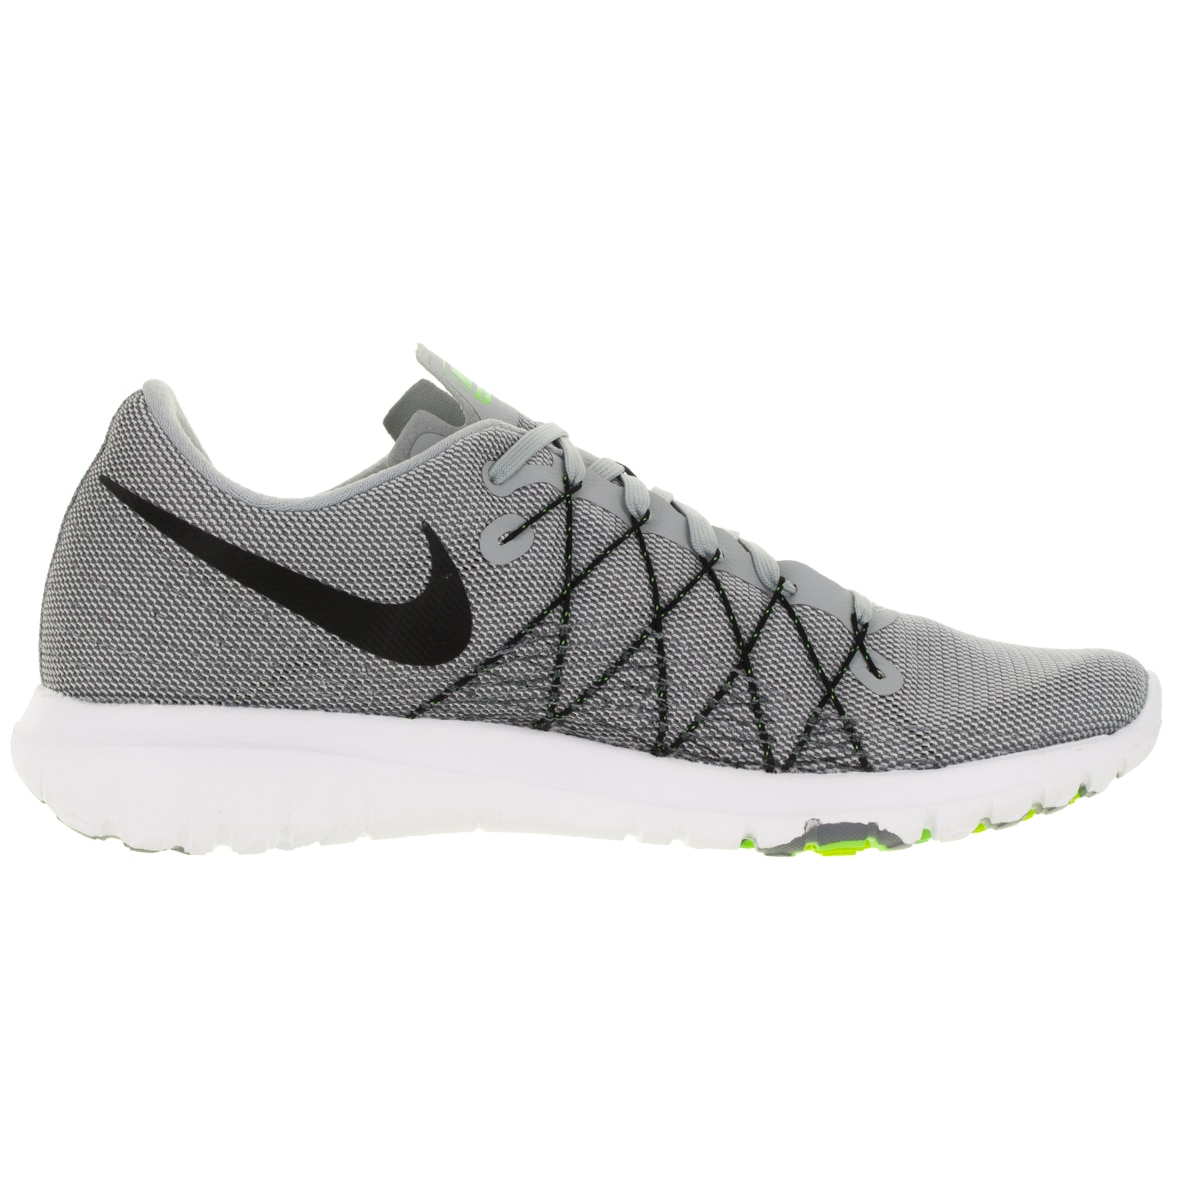 231a69ee9427 Shop Nike Men s Flex Fury 2 Wolf Grey Black Dark Grey Grey Running Shoe -  Free Shipping Today - Overstock - 12329074